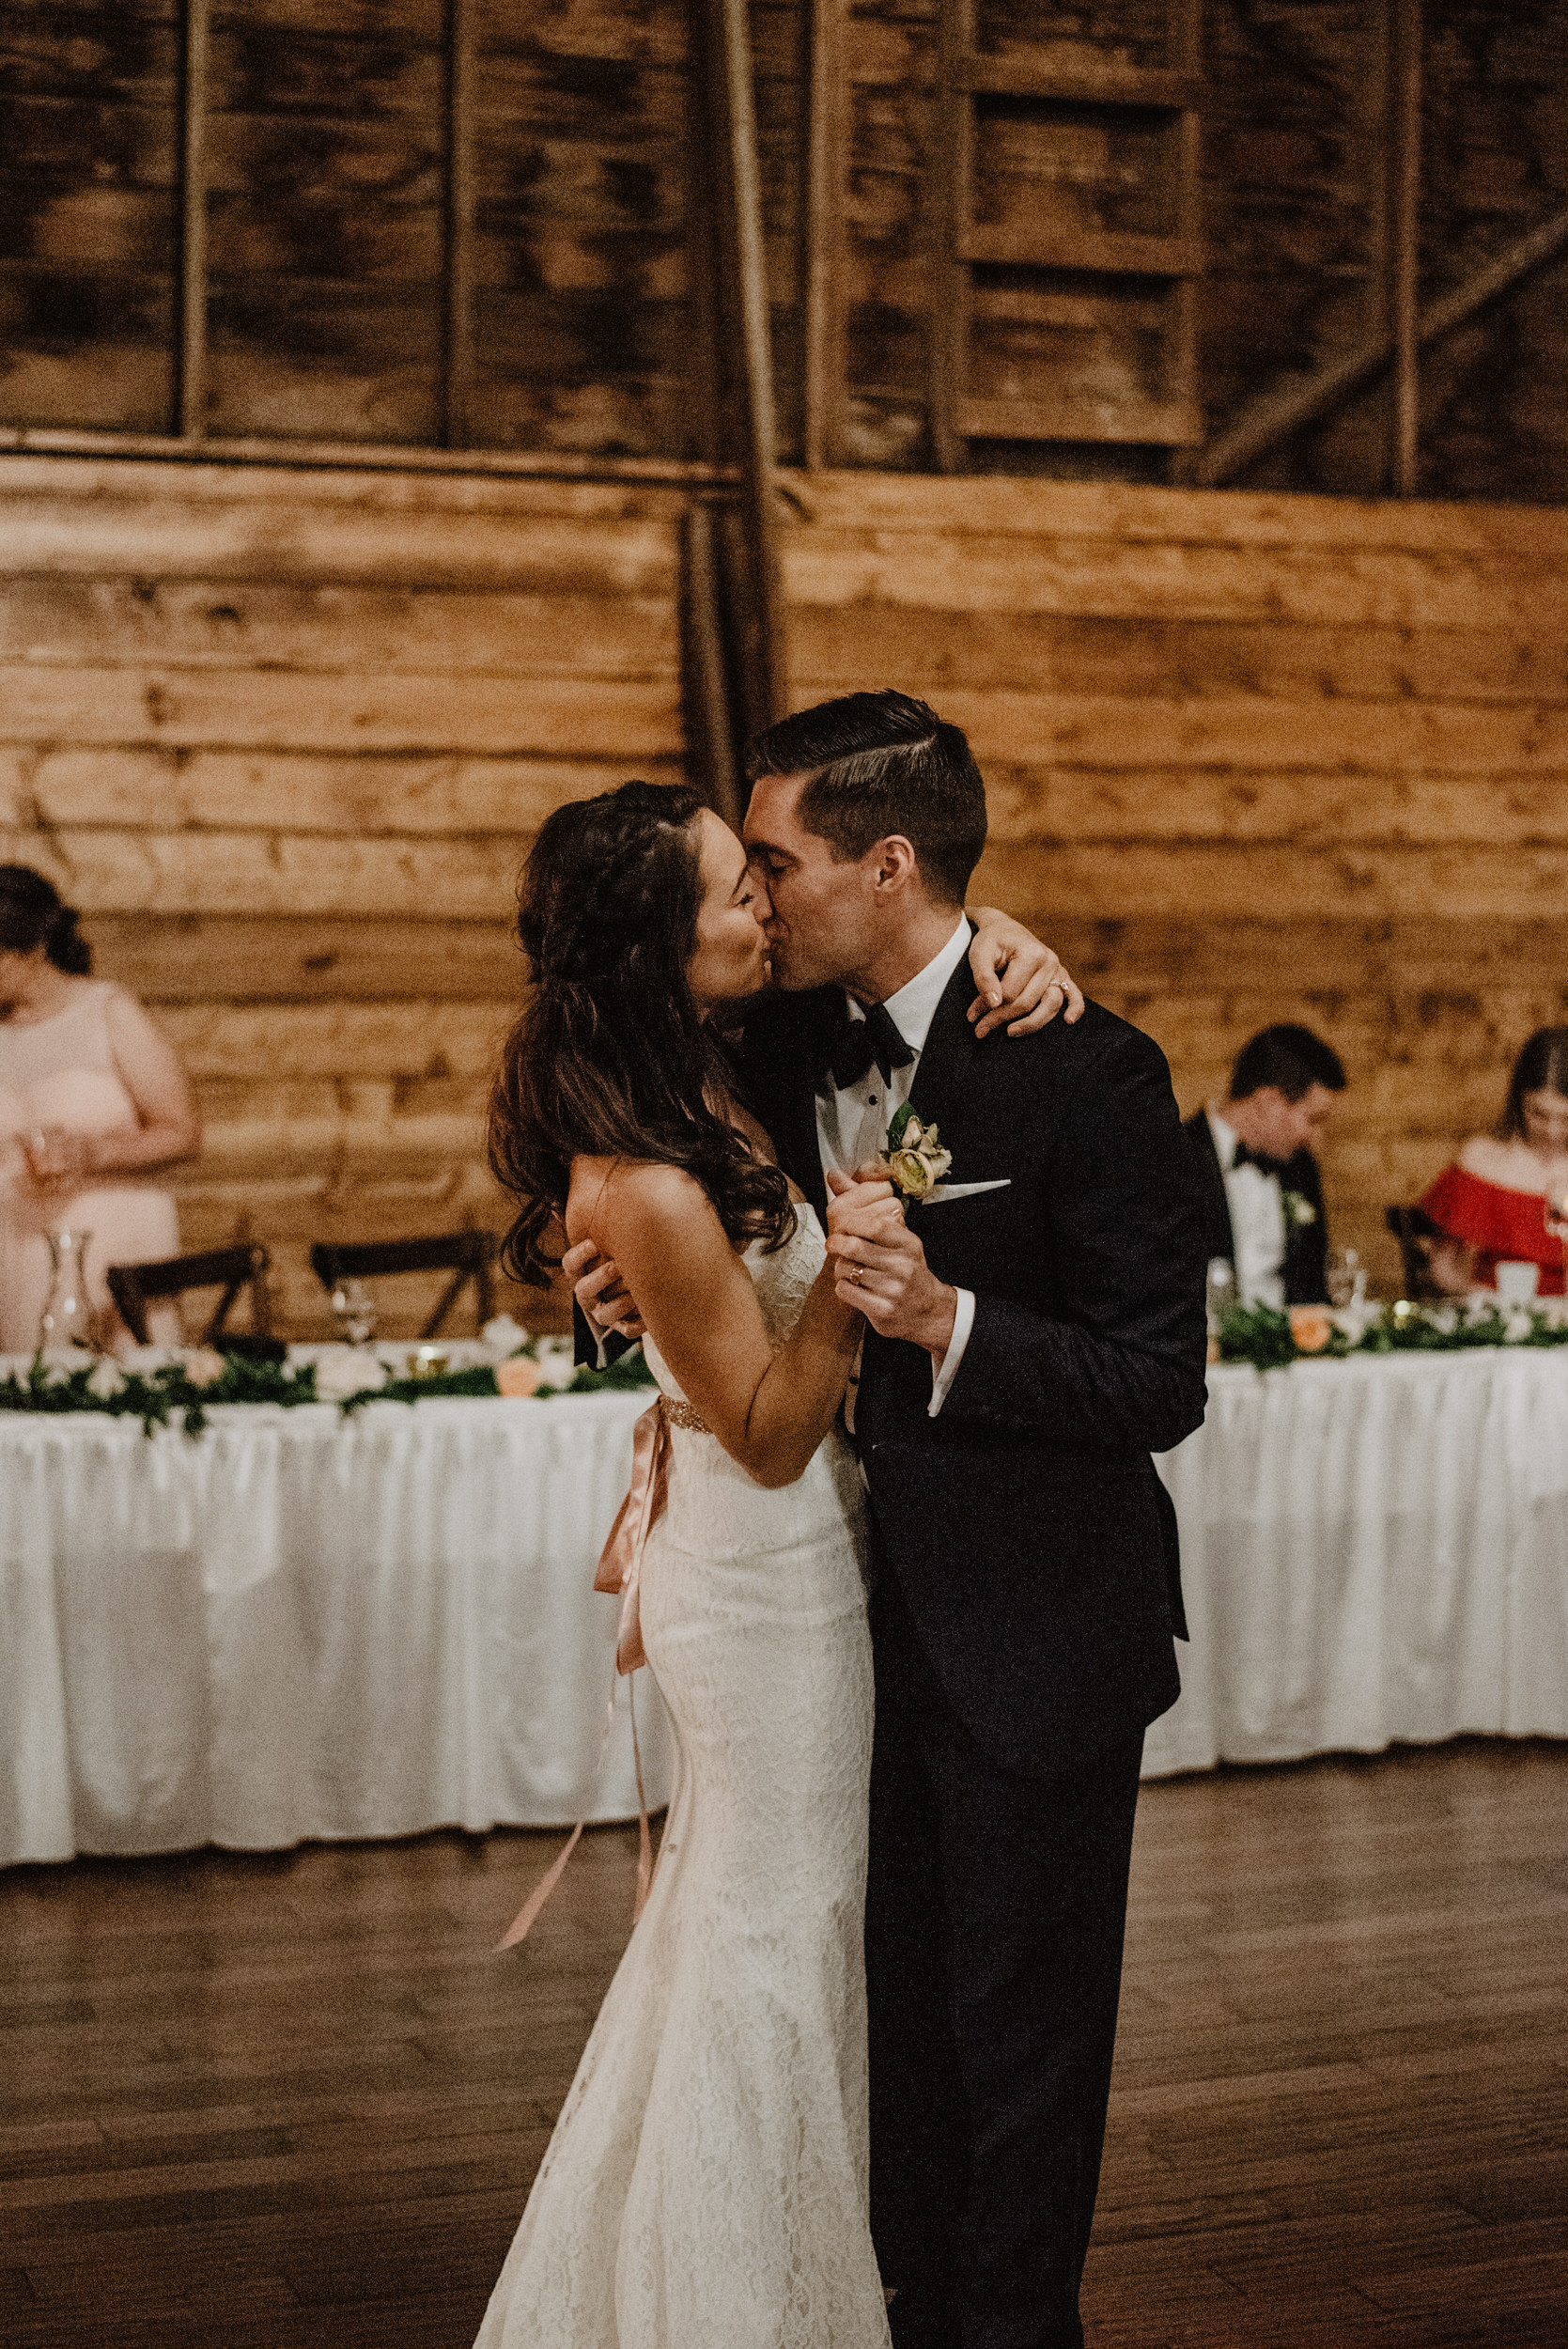 The Barn at the Ackerhurst Dairy Farm Omaha Nebraska Wedding Kaylie Sirek Photography118.jpg